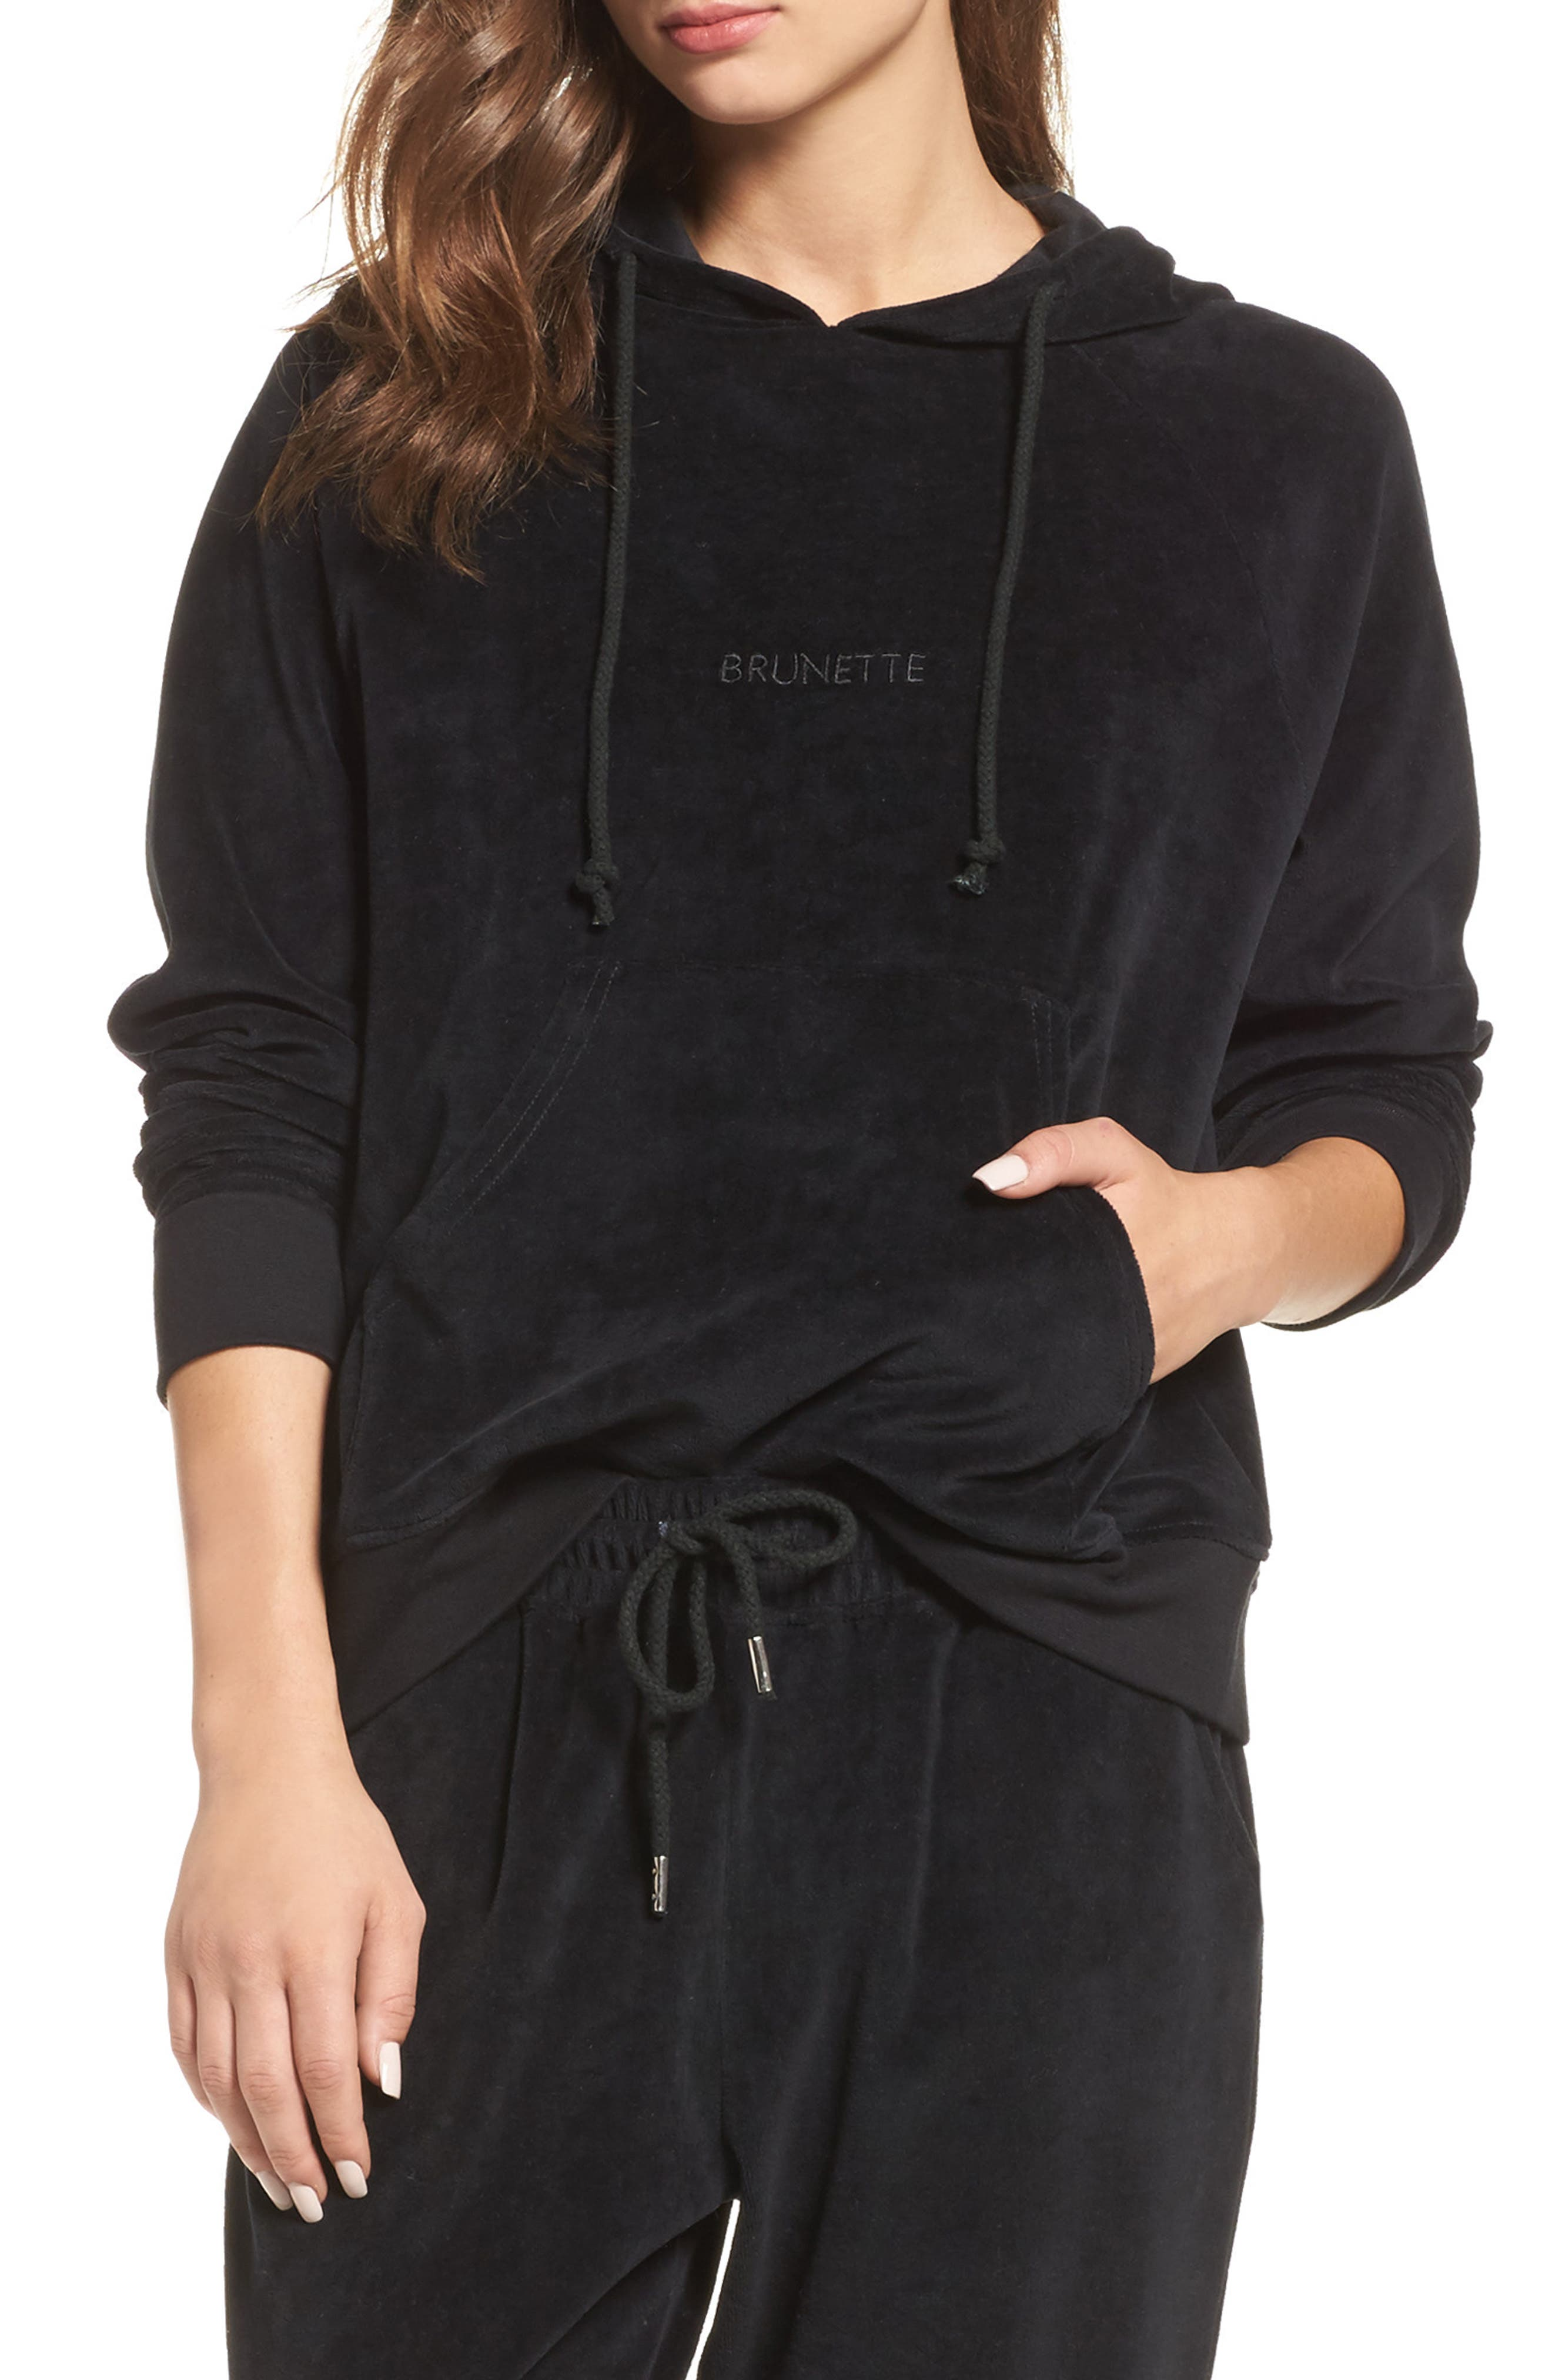 Brunette Embroidered Velour Hoodie,                             Main thumbnail 1, color,